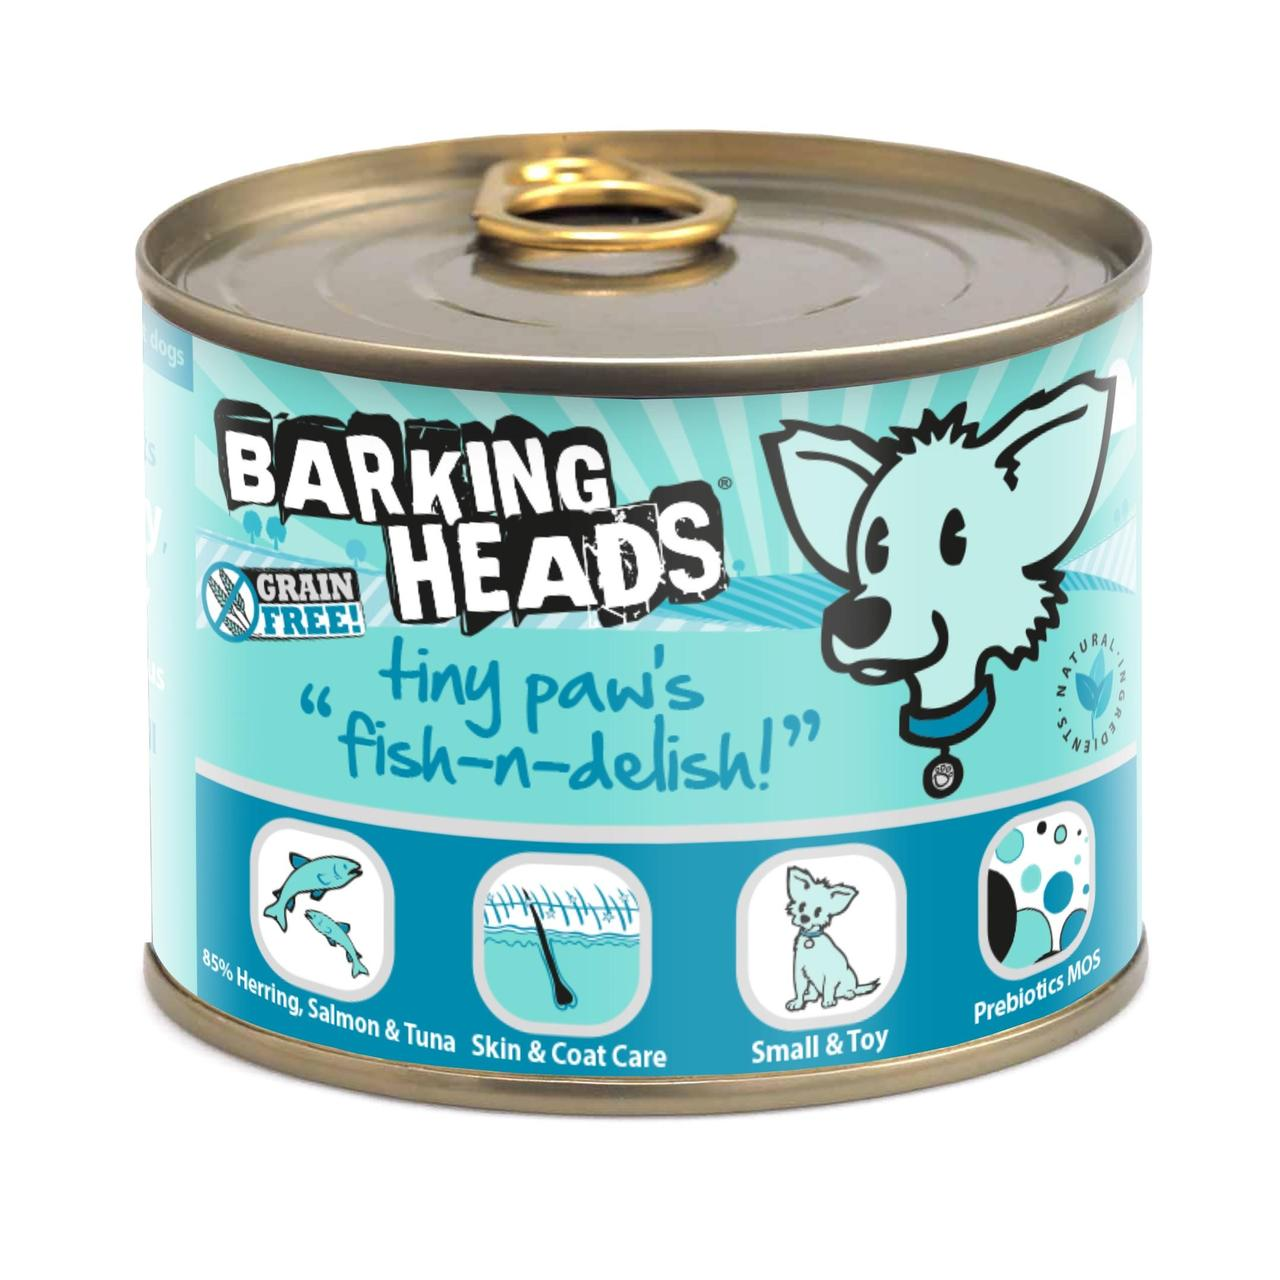 An image of Barking Heads Tiny Paws Fish n Delish